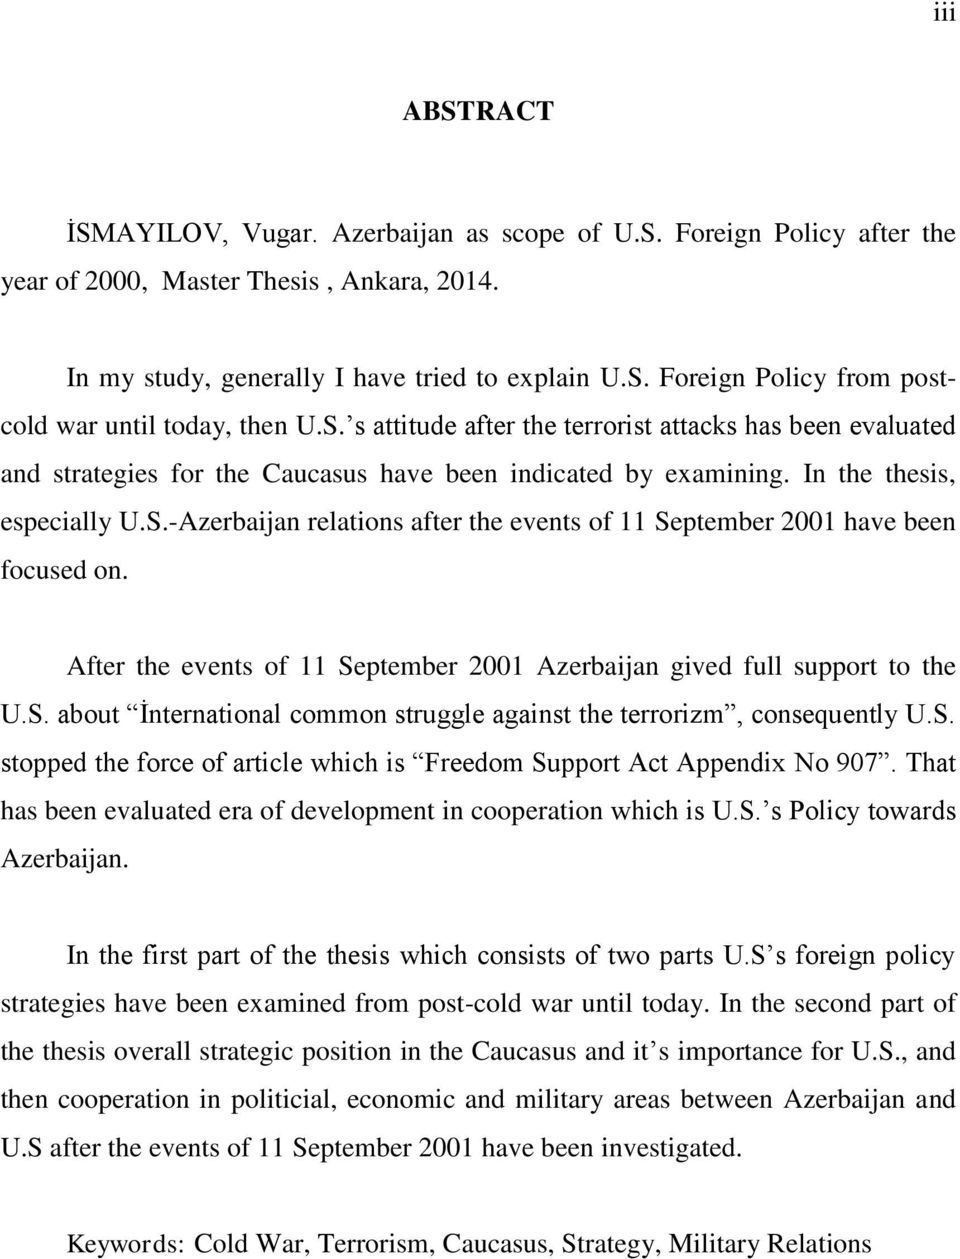 After the events of 11 September 2001 Azerbaijan gived full support to the U.S. about İnternational common struggle against the terrorizm, consequently U.S. stopped the force of article which is Freedom Support Act Appendix No 907.